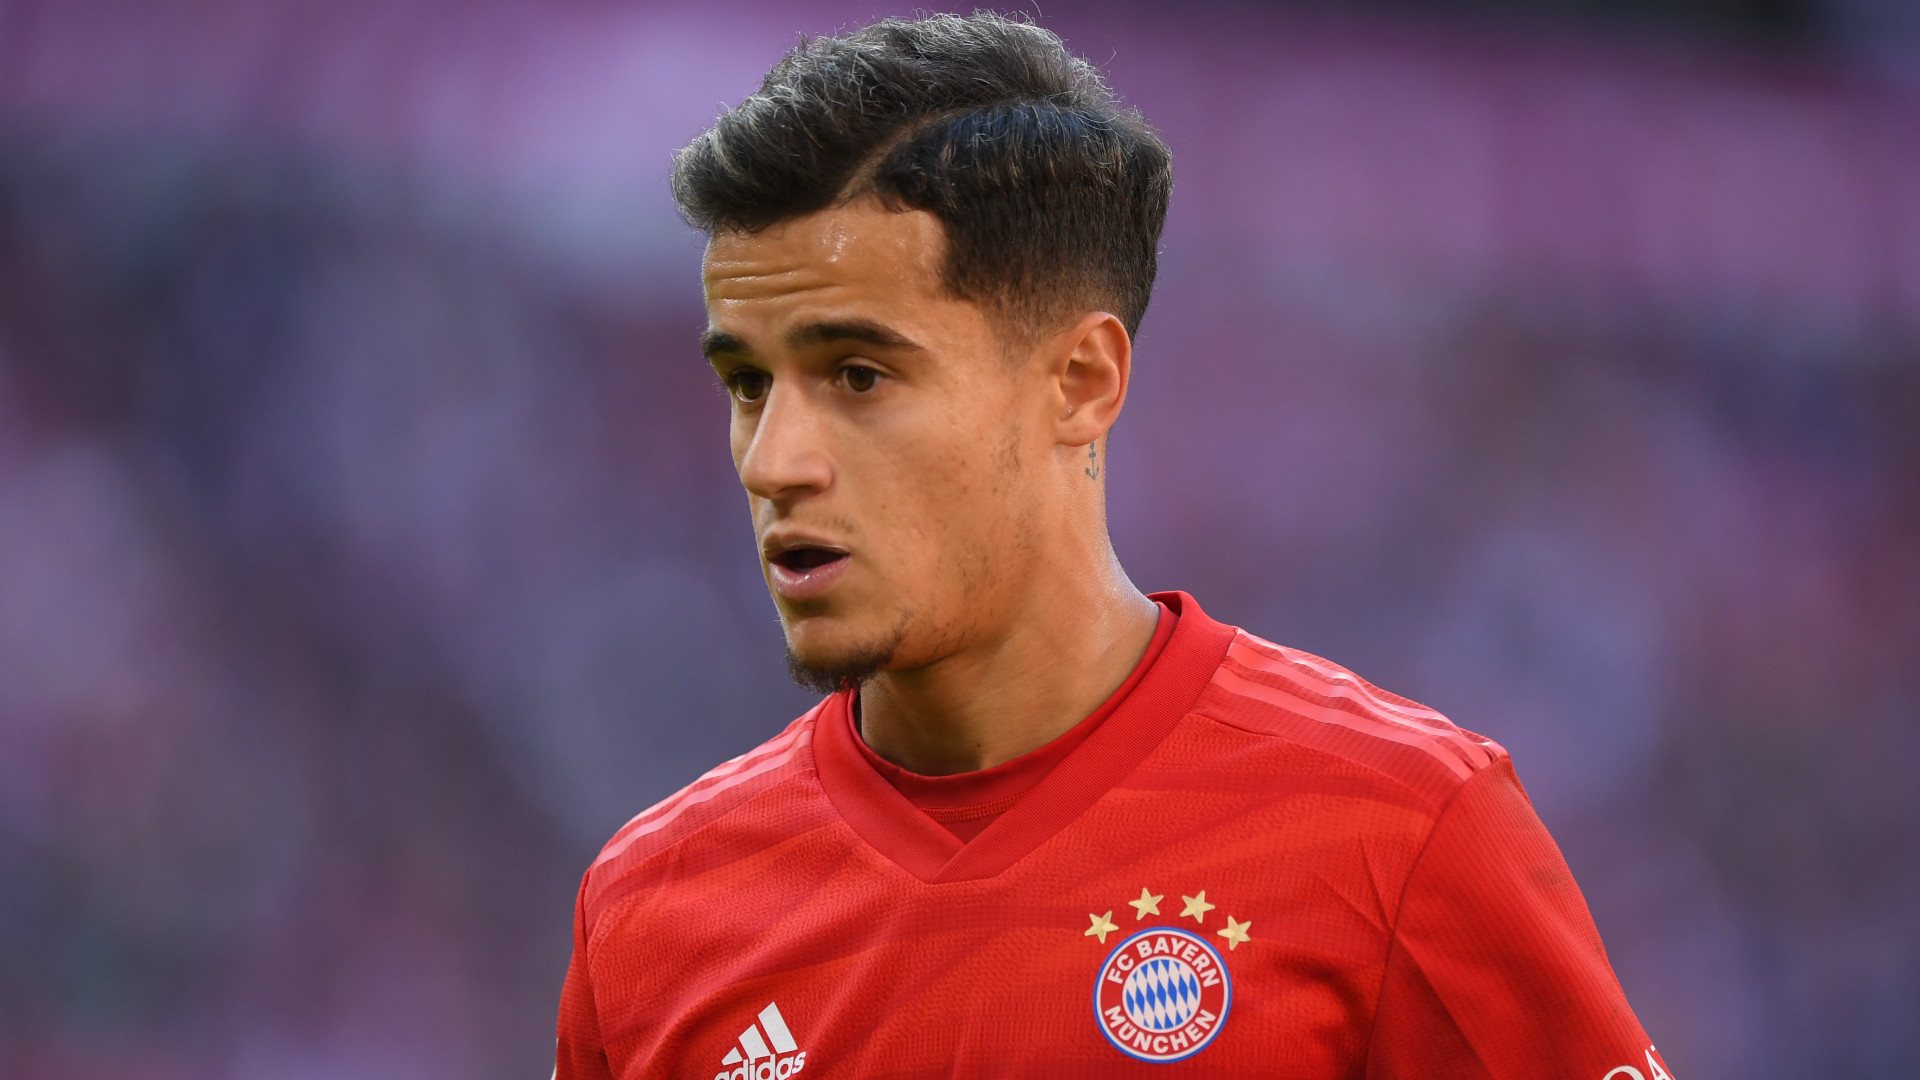 Transfer news and rumours LIVE: Arsenal join race for Coutinho